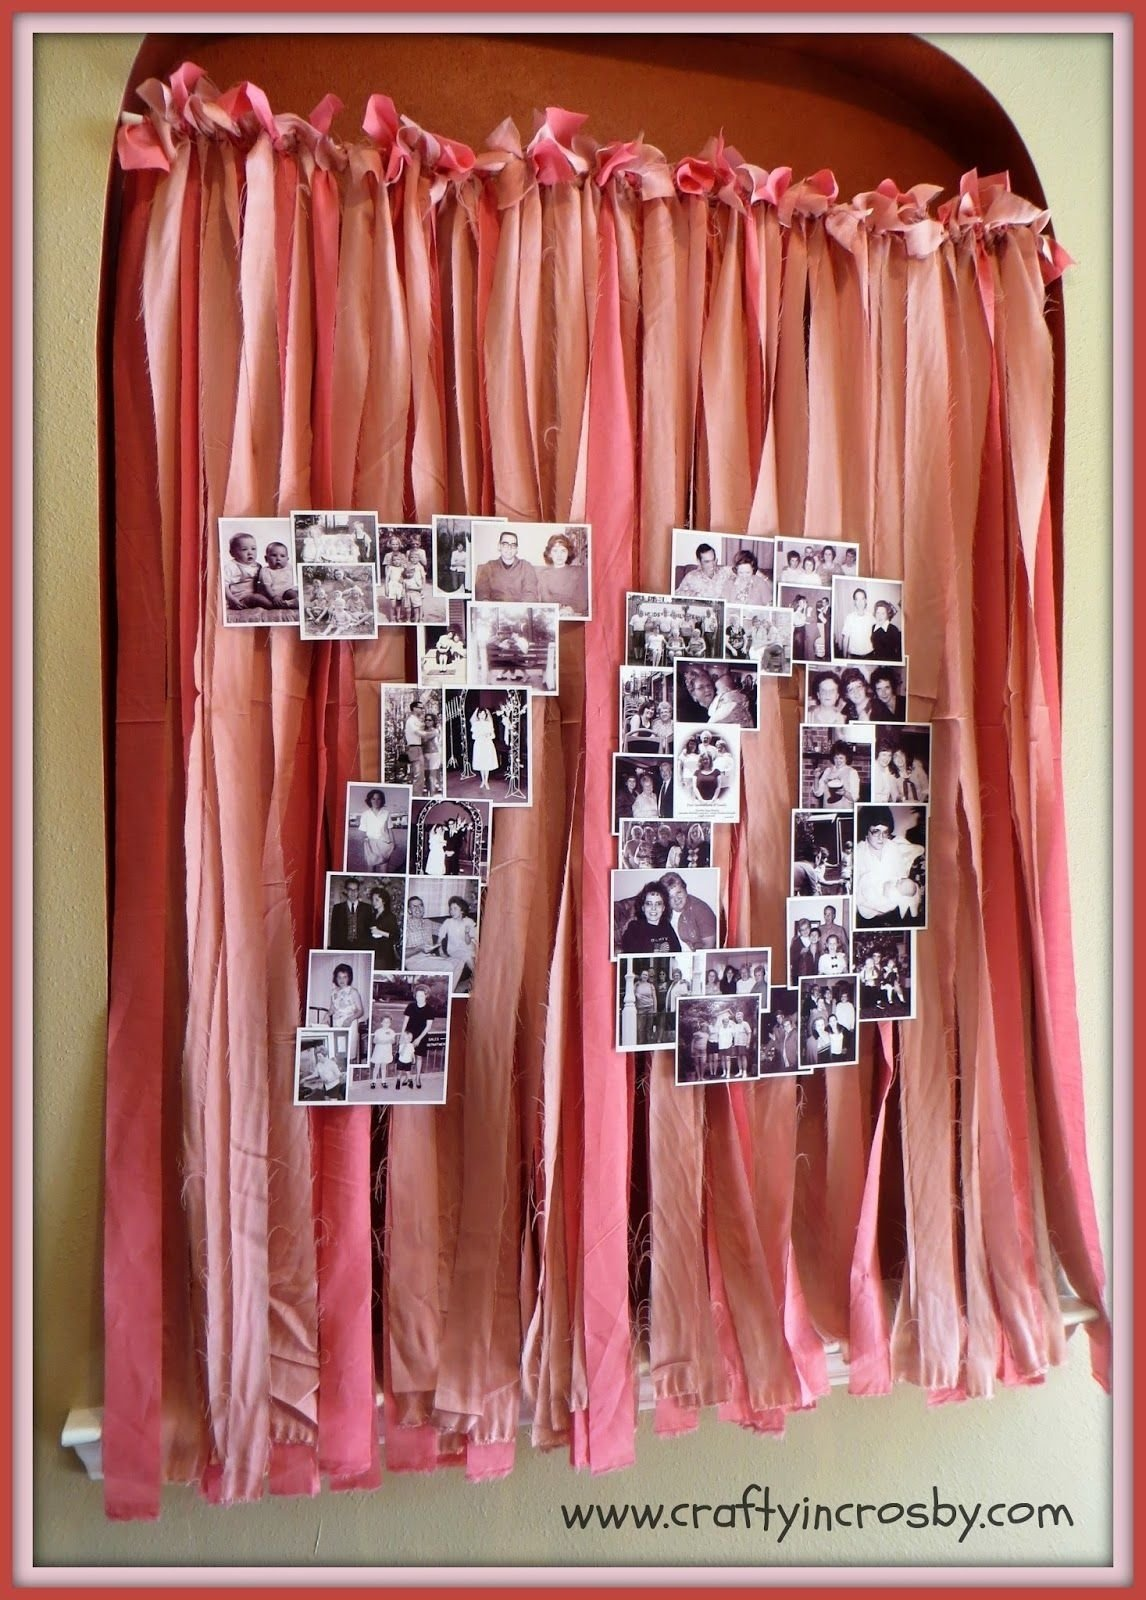 10 Great Surprise 70Th Birthday Party Ideas photo collage for a surprise 70th birthday party large number 2021